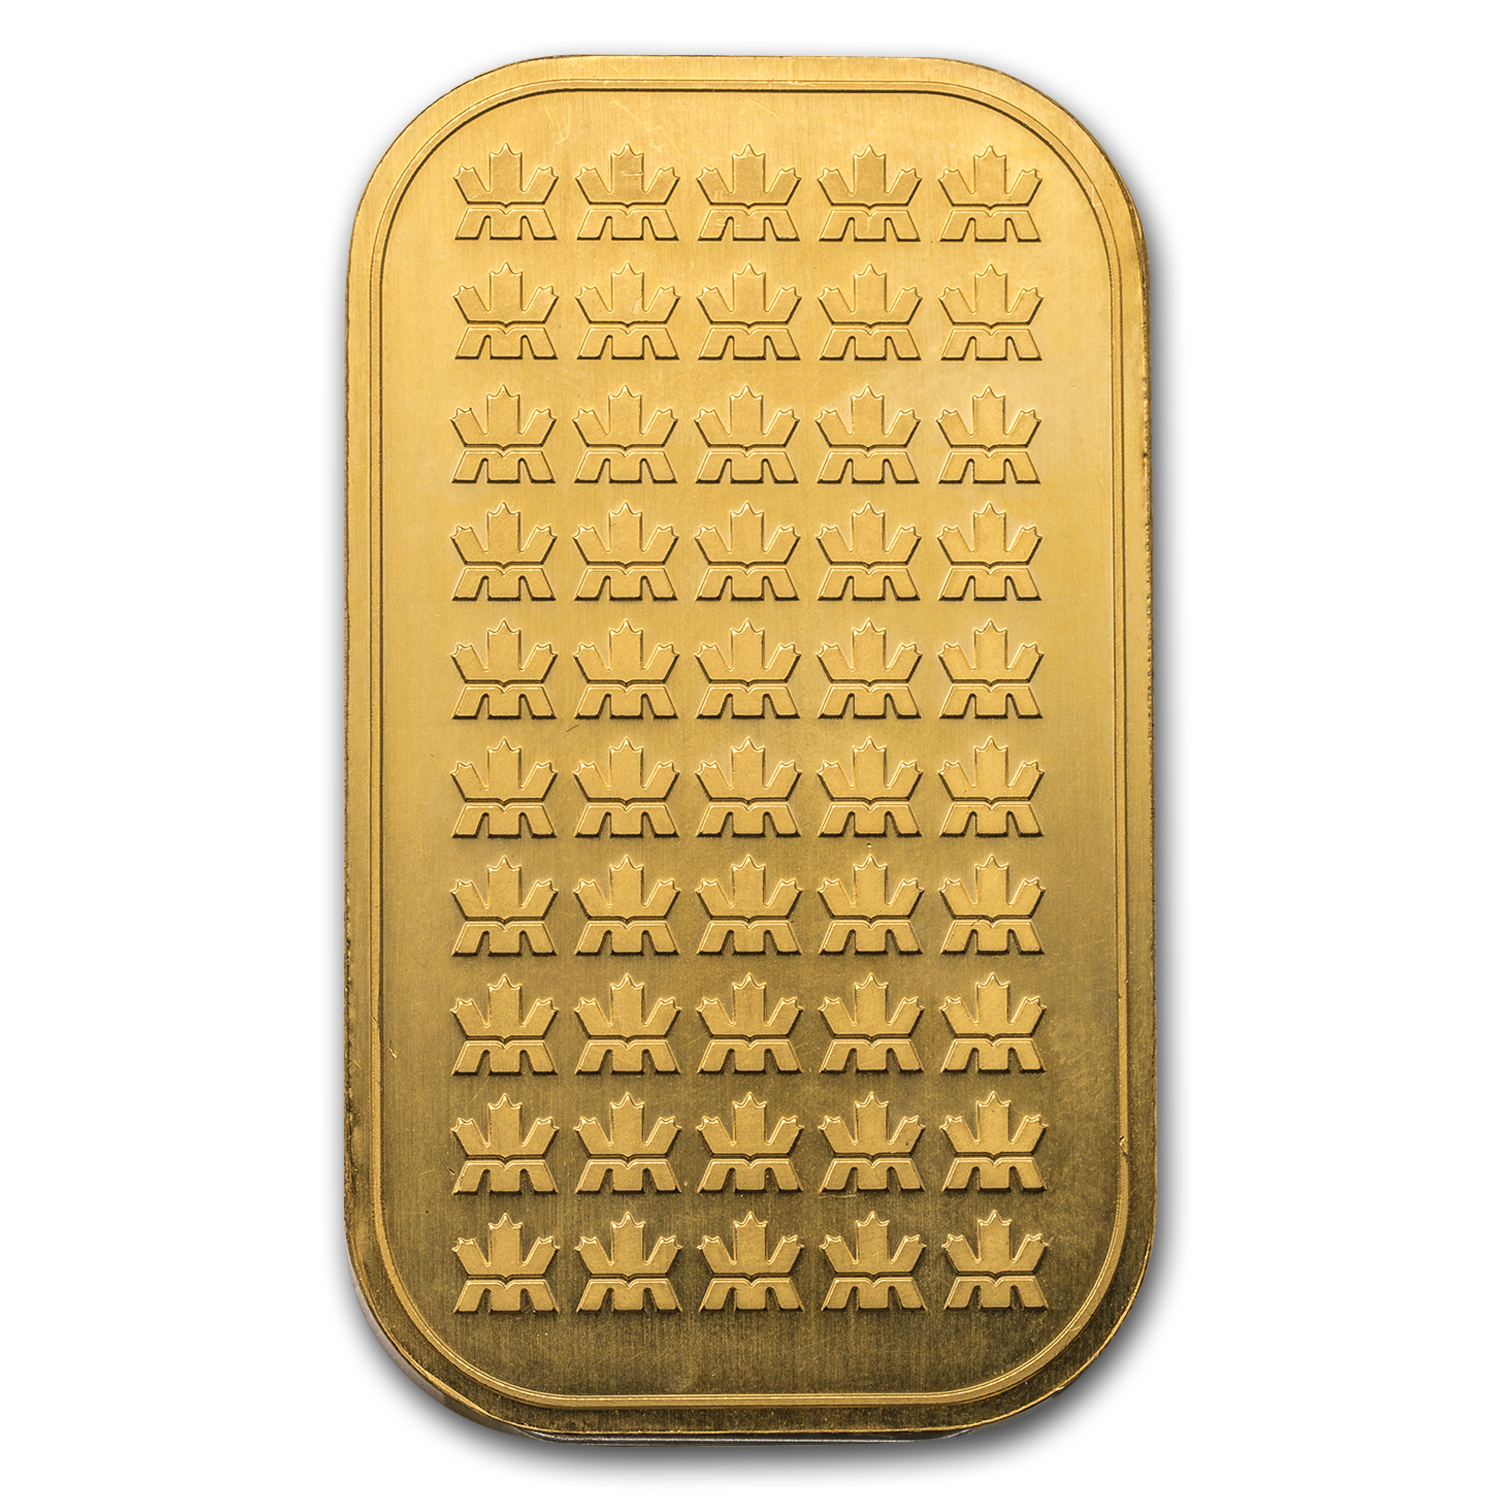 10 oz Gold Bar - Royal Canadian Mint RCM